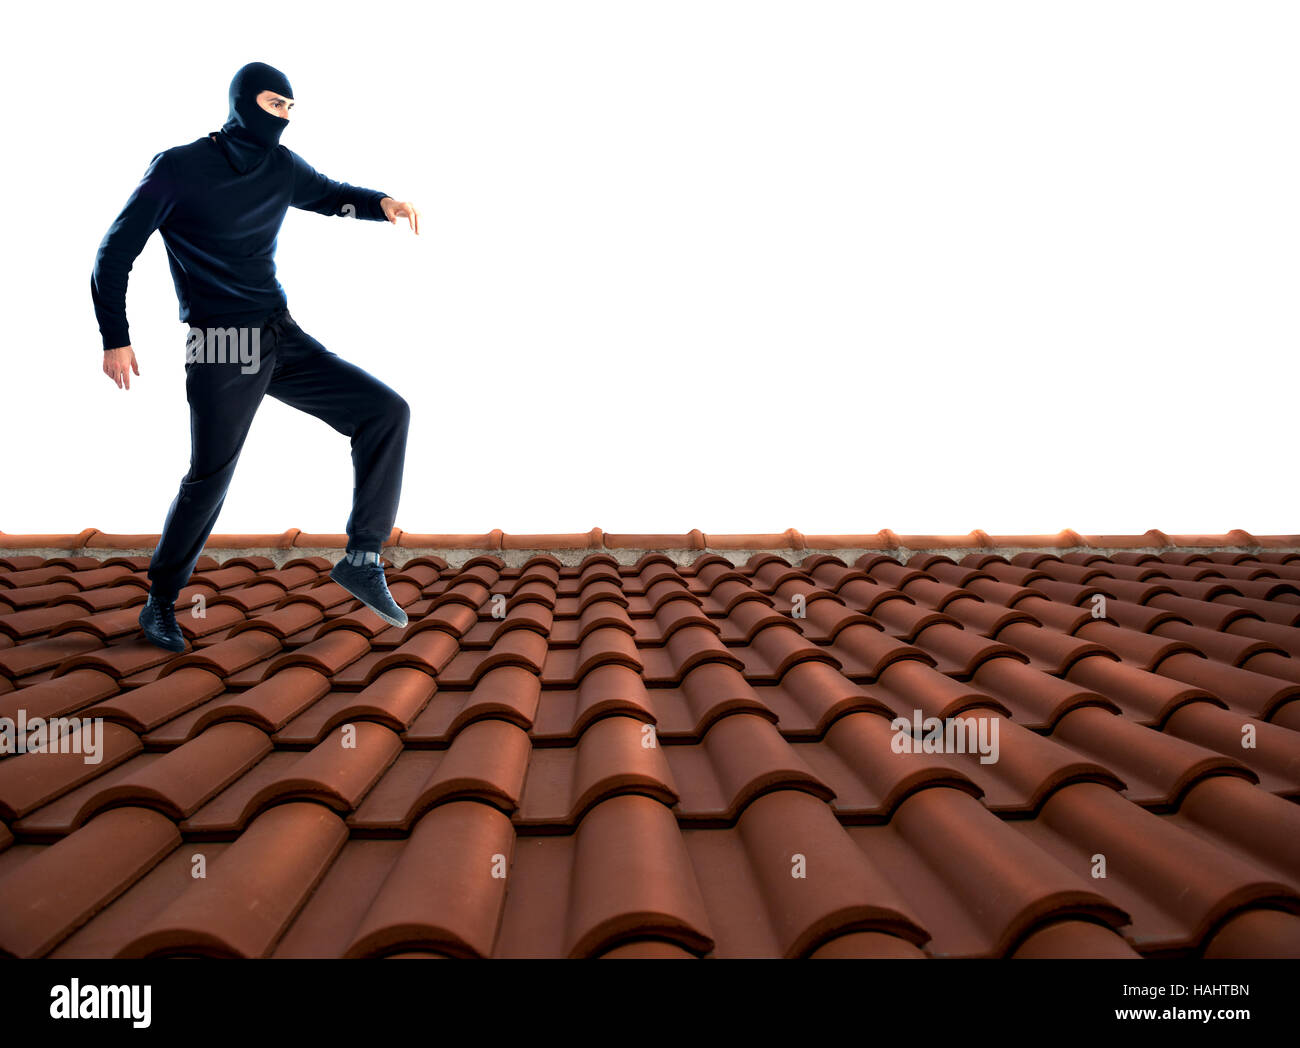 Thief on the roof - Stock Image